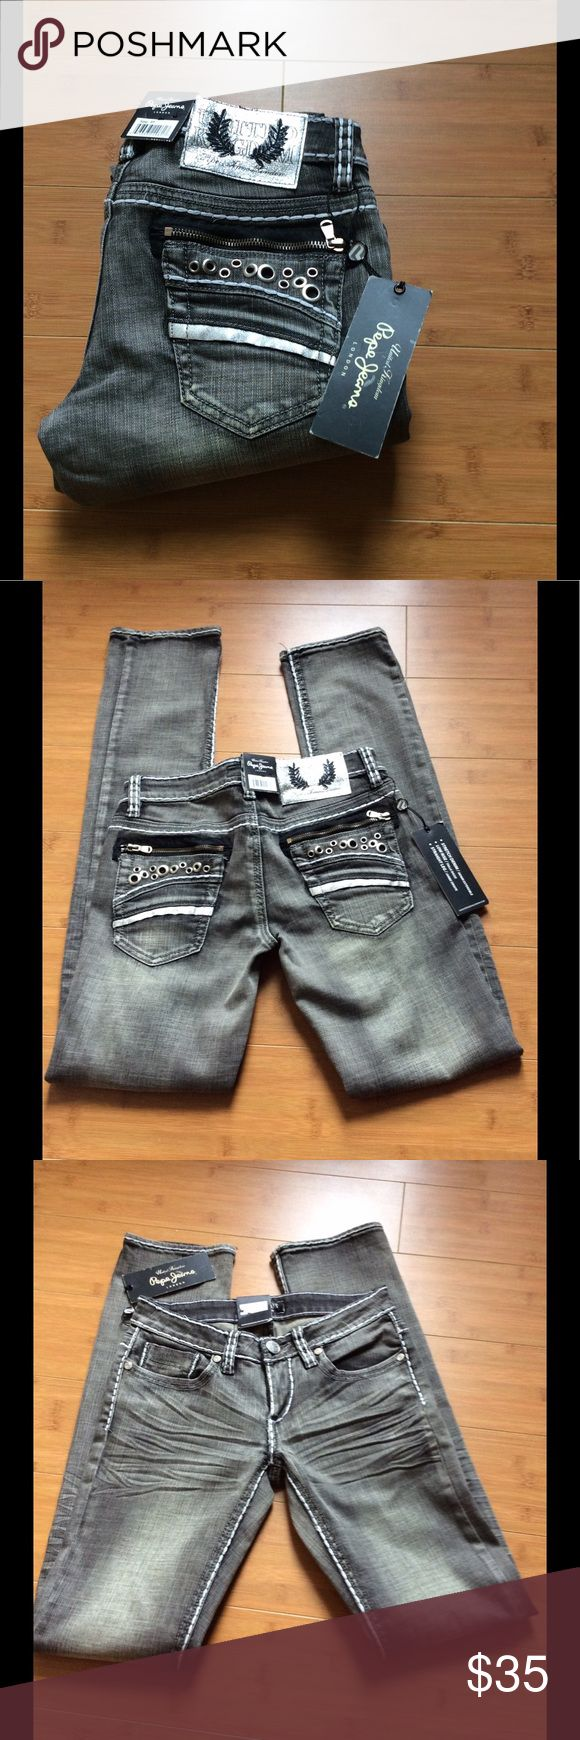 """Pepe Jeans. """"Esme"""" Size 27 Pepe """"Esme"""" black Cromwell (color) stonewashed black/grey.  Size 27, length 32.  Low rise with white stitching   Super cute. Pepe Jeans Jeans Straight Leg"""